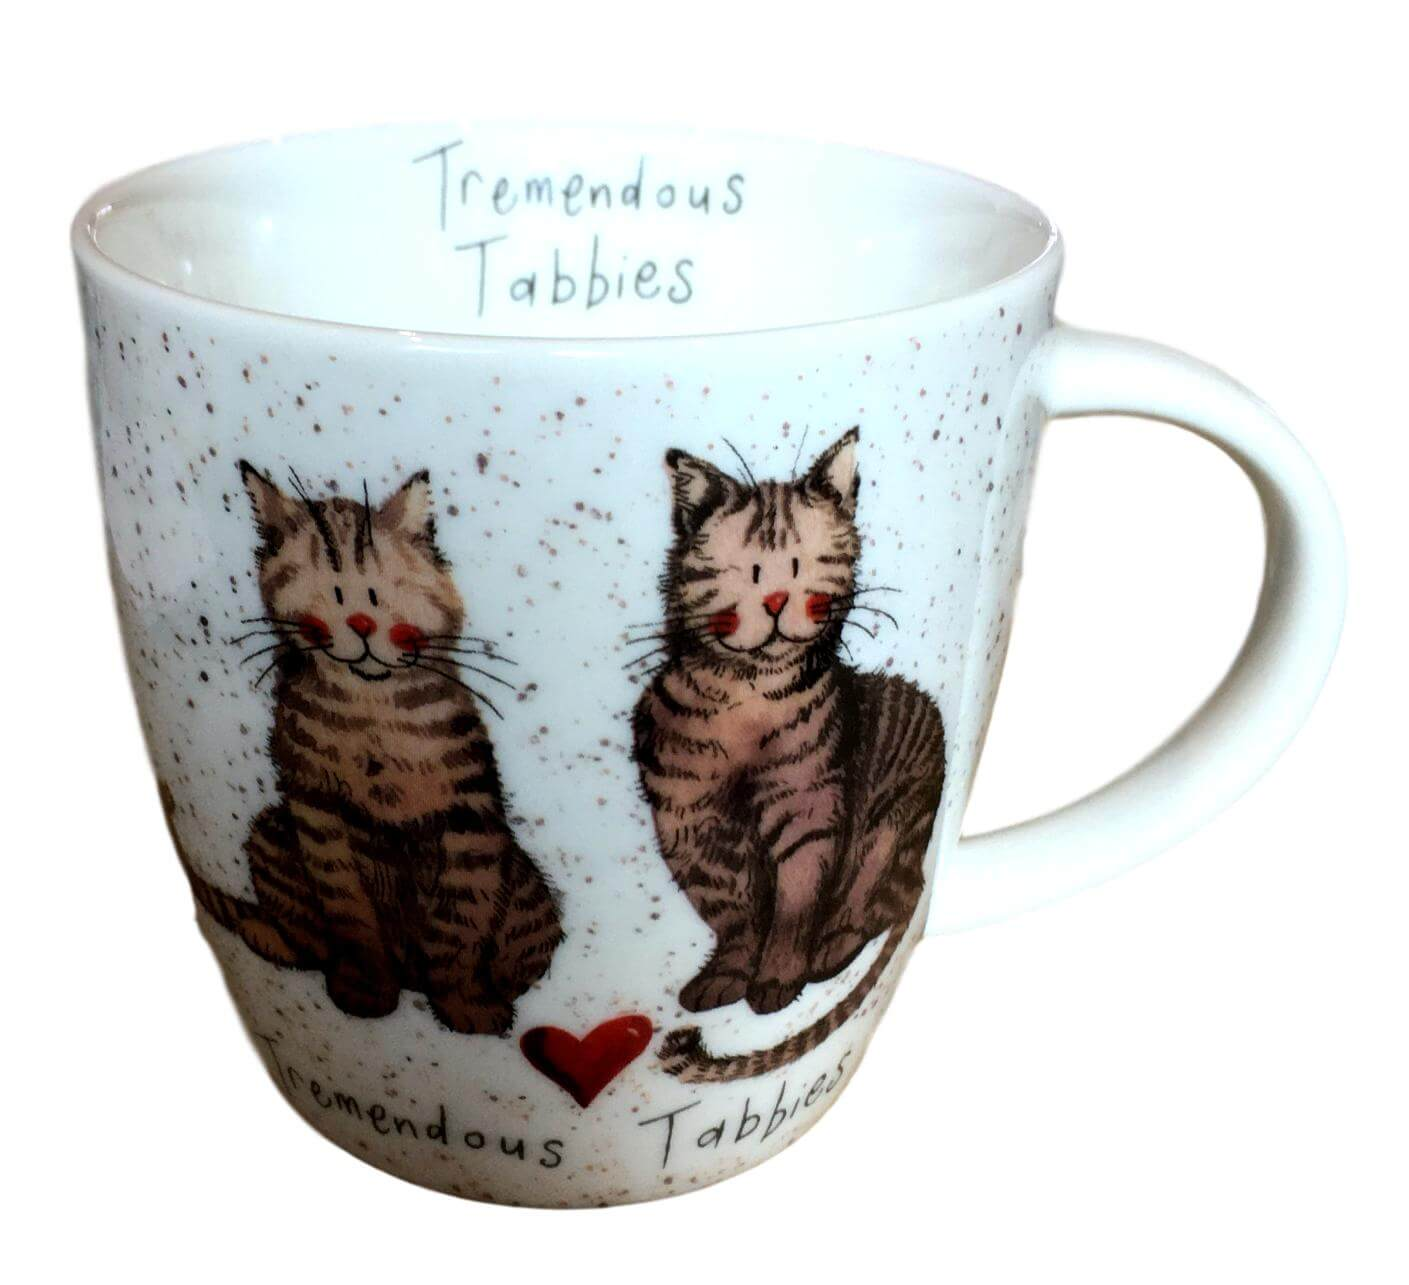 Tremendous Tabbies Cat Mug by Alex Clark